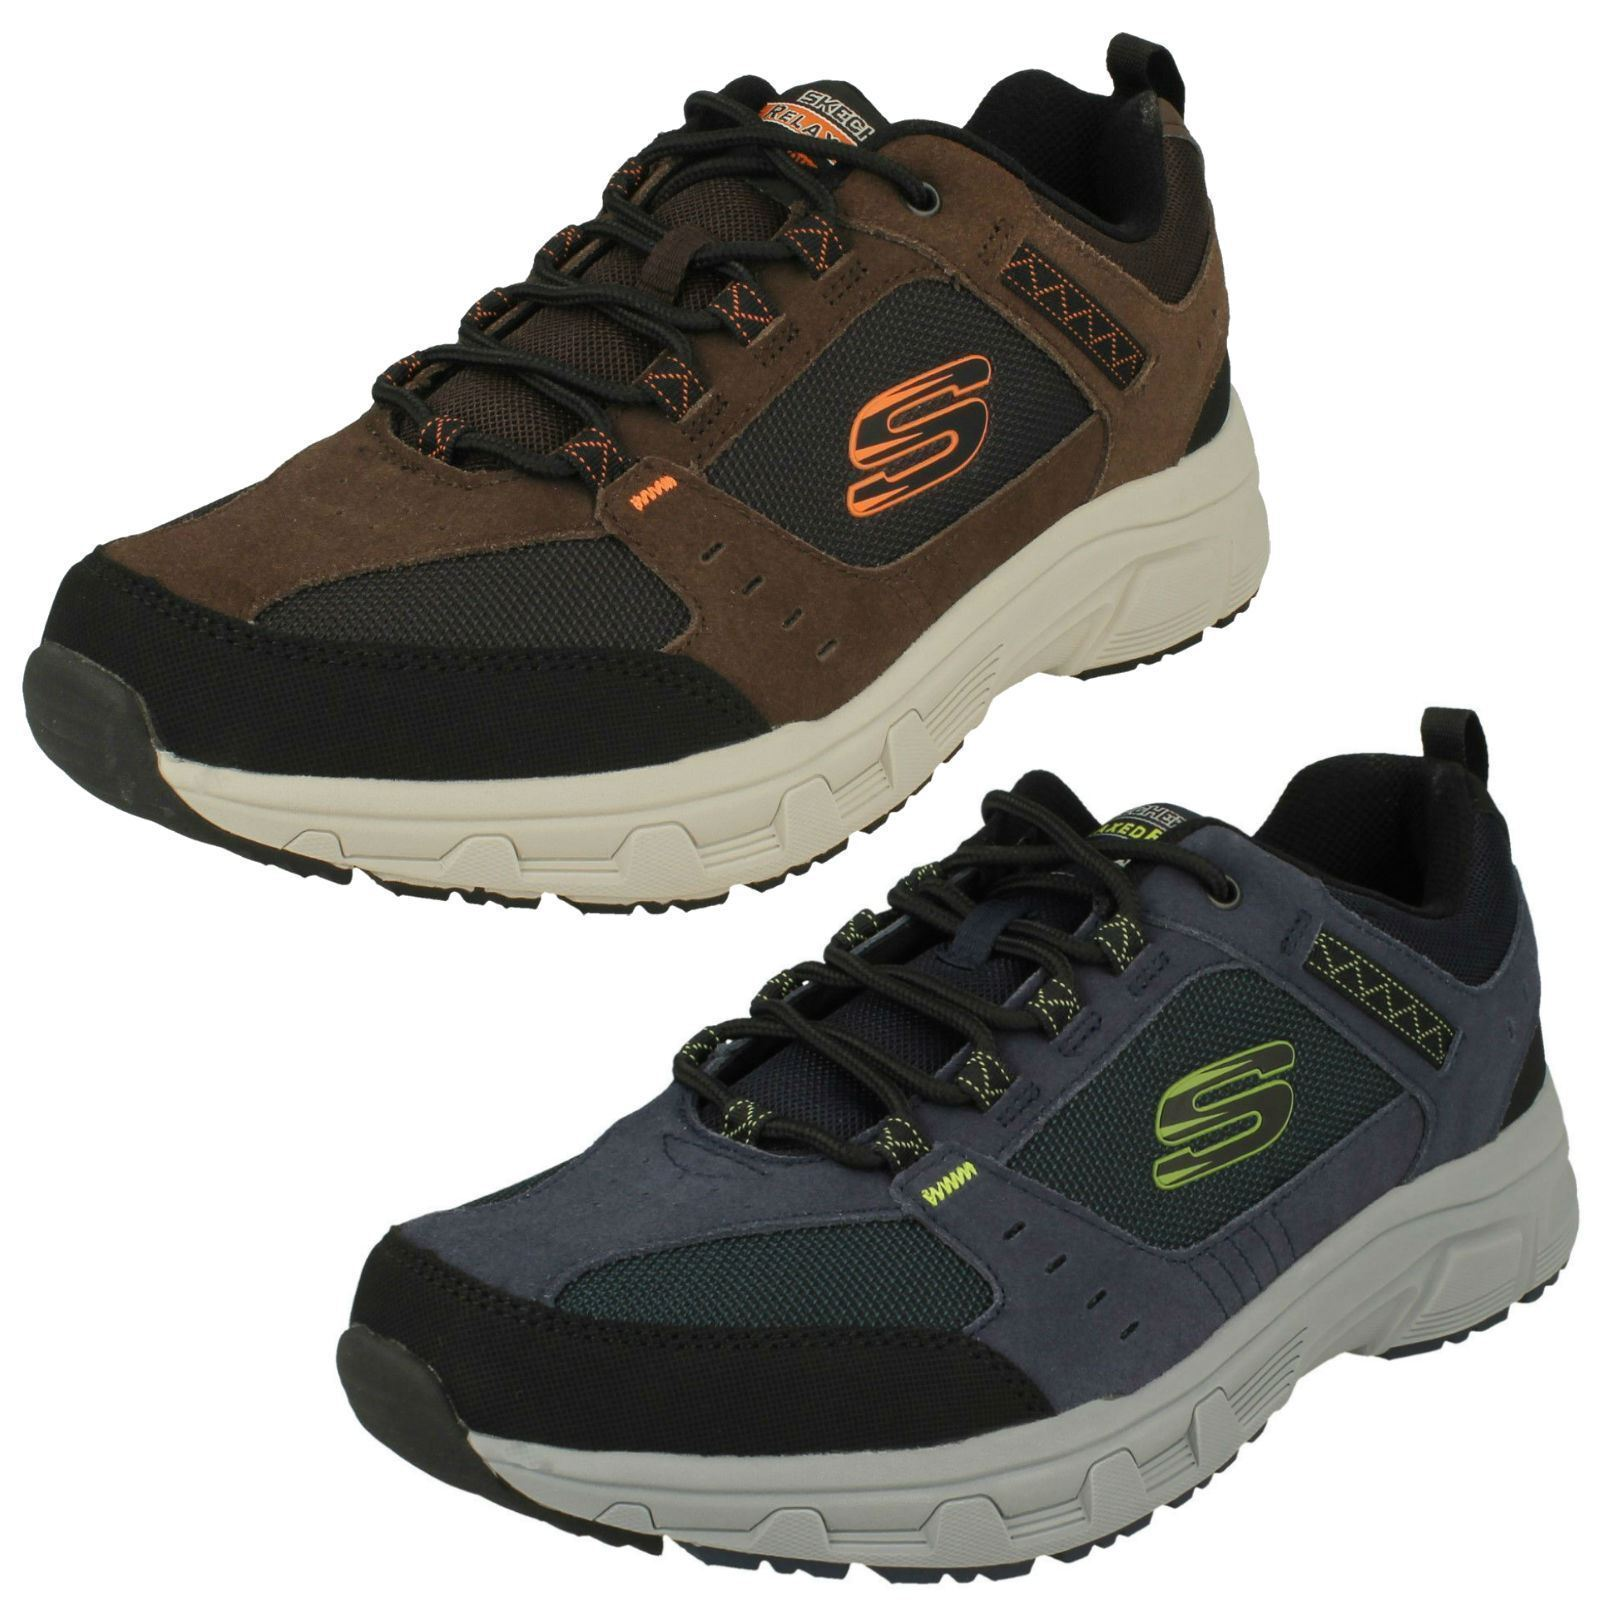 Mens Skechers Outdoor Oak Canyon 51893 Lace Up Trainers